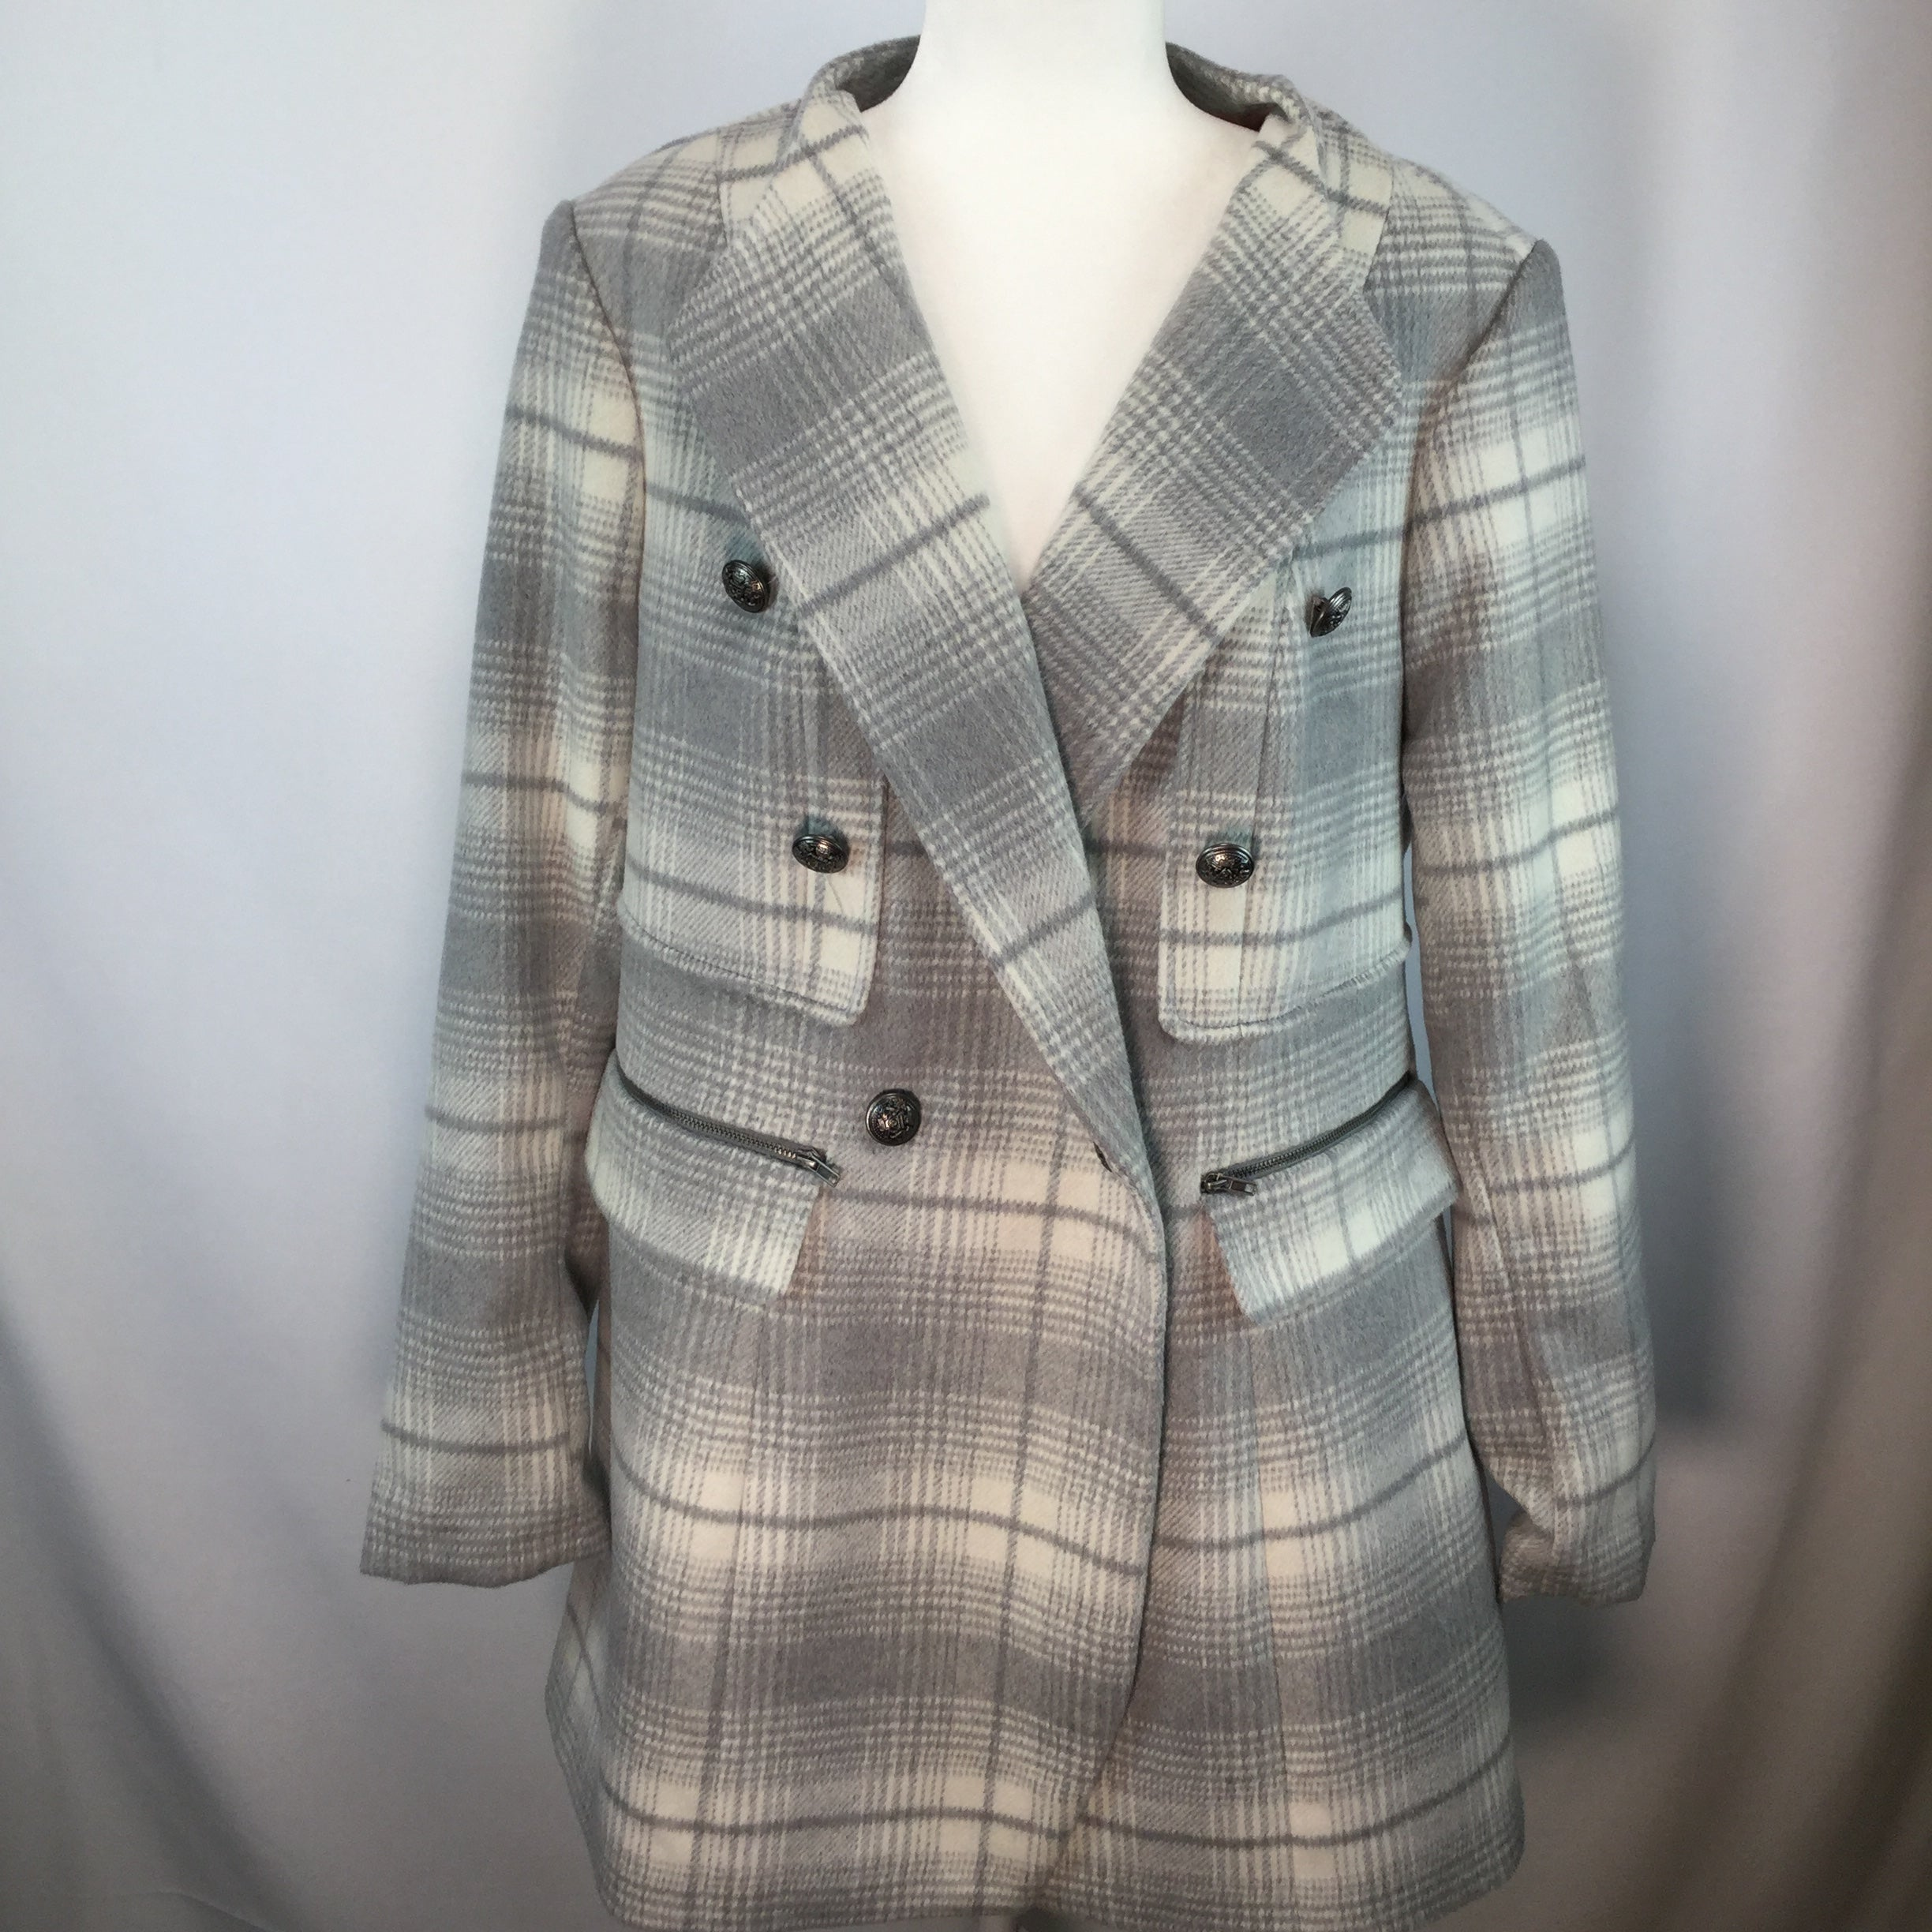 APPAREL,OUTERWEAR - GRAY AND BRUSHED WHITE PLAID WOOL MIDI COAT. BUTTON CLOSURE . 2 ZIP POCKETS ON THE OUTSIDE